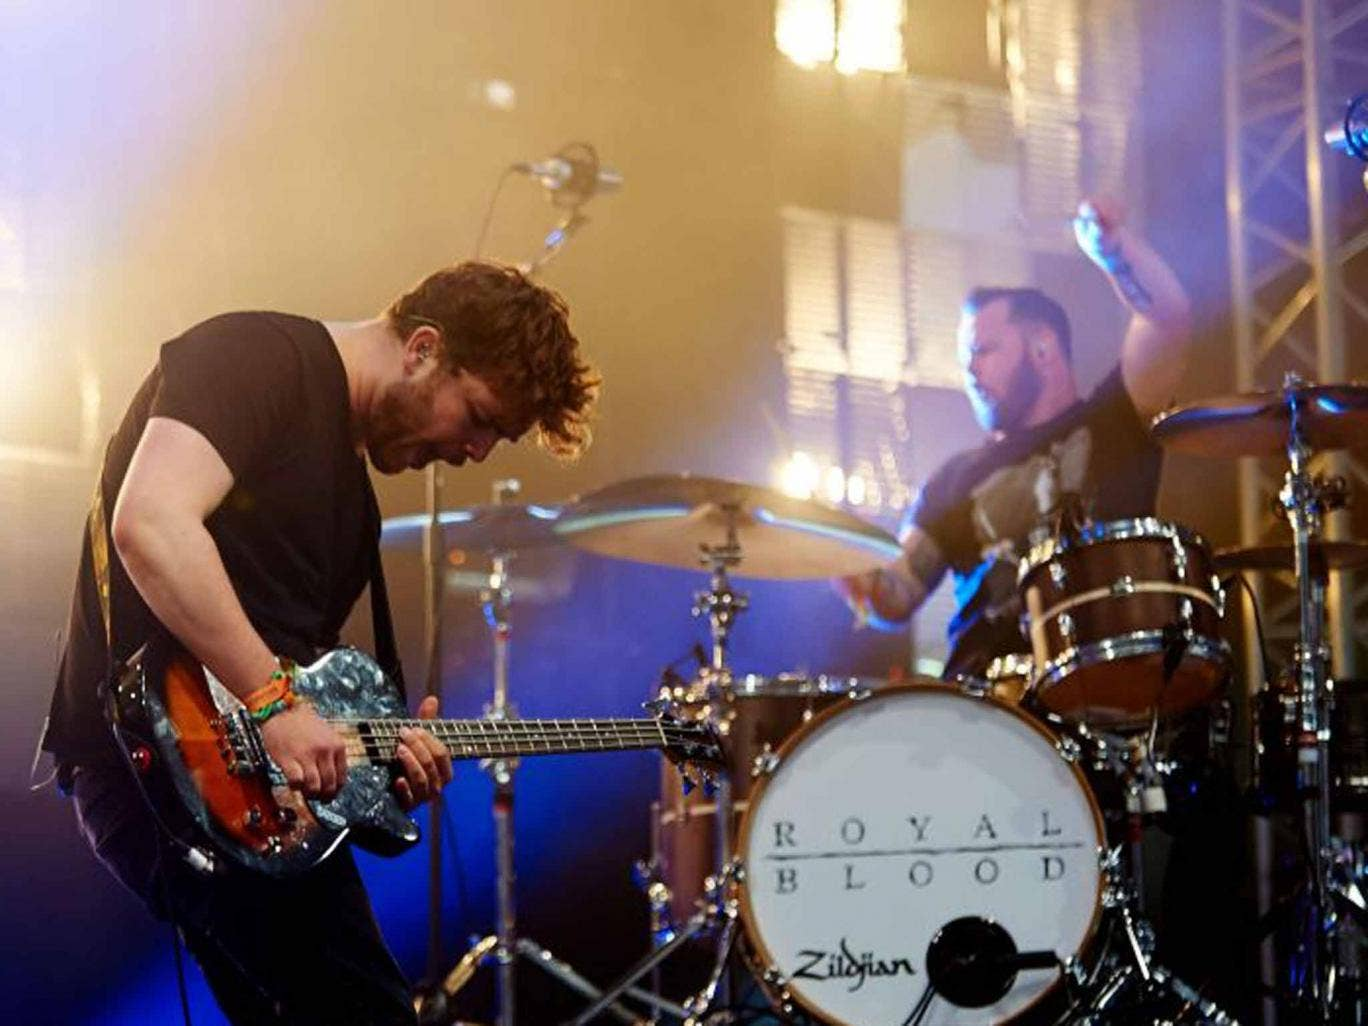 Fired up: Mike Kerr and Ben Thatcher of Royal Blood